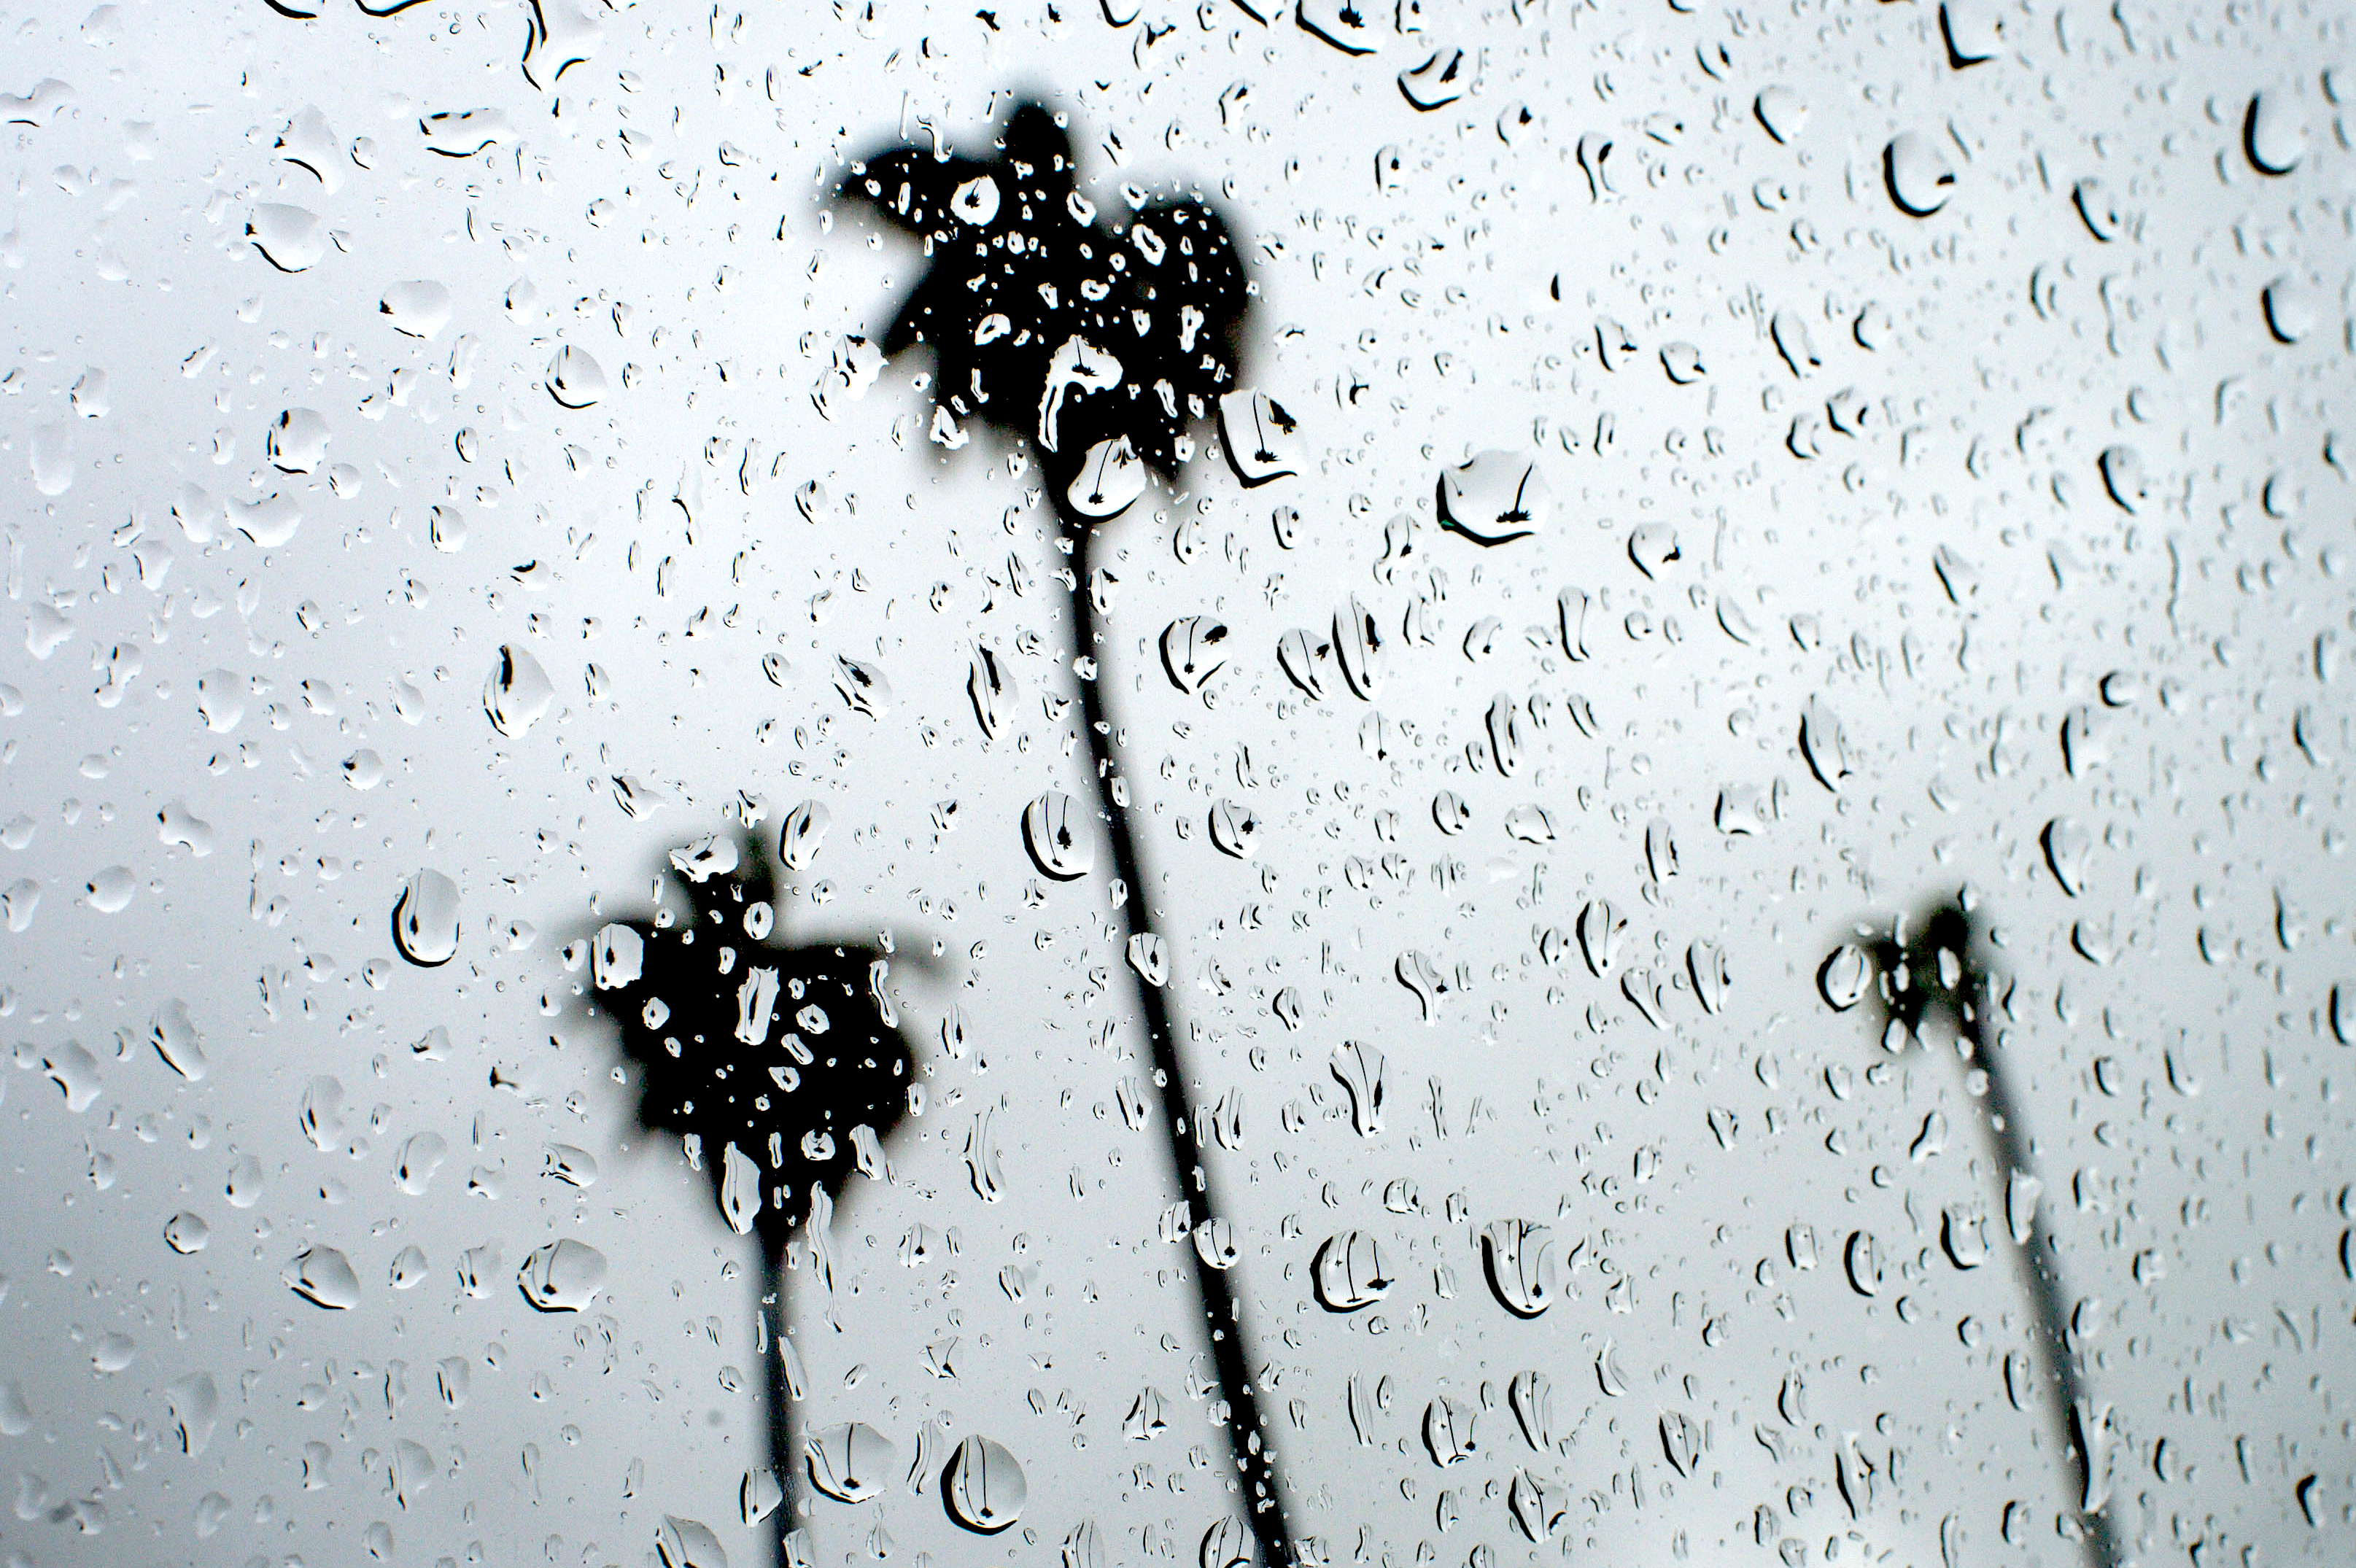 Rain And Rainfall Records Keep Falling In Southern California Daily News